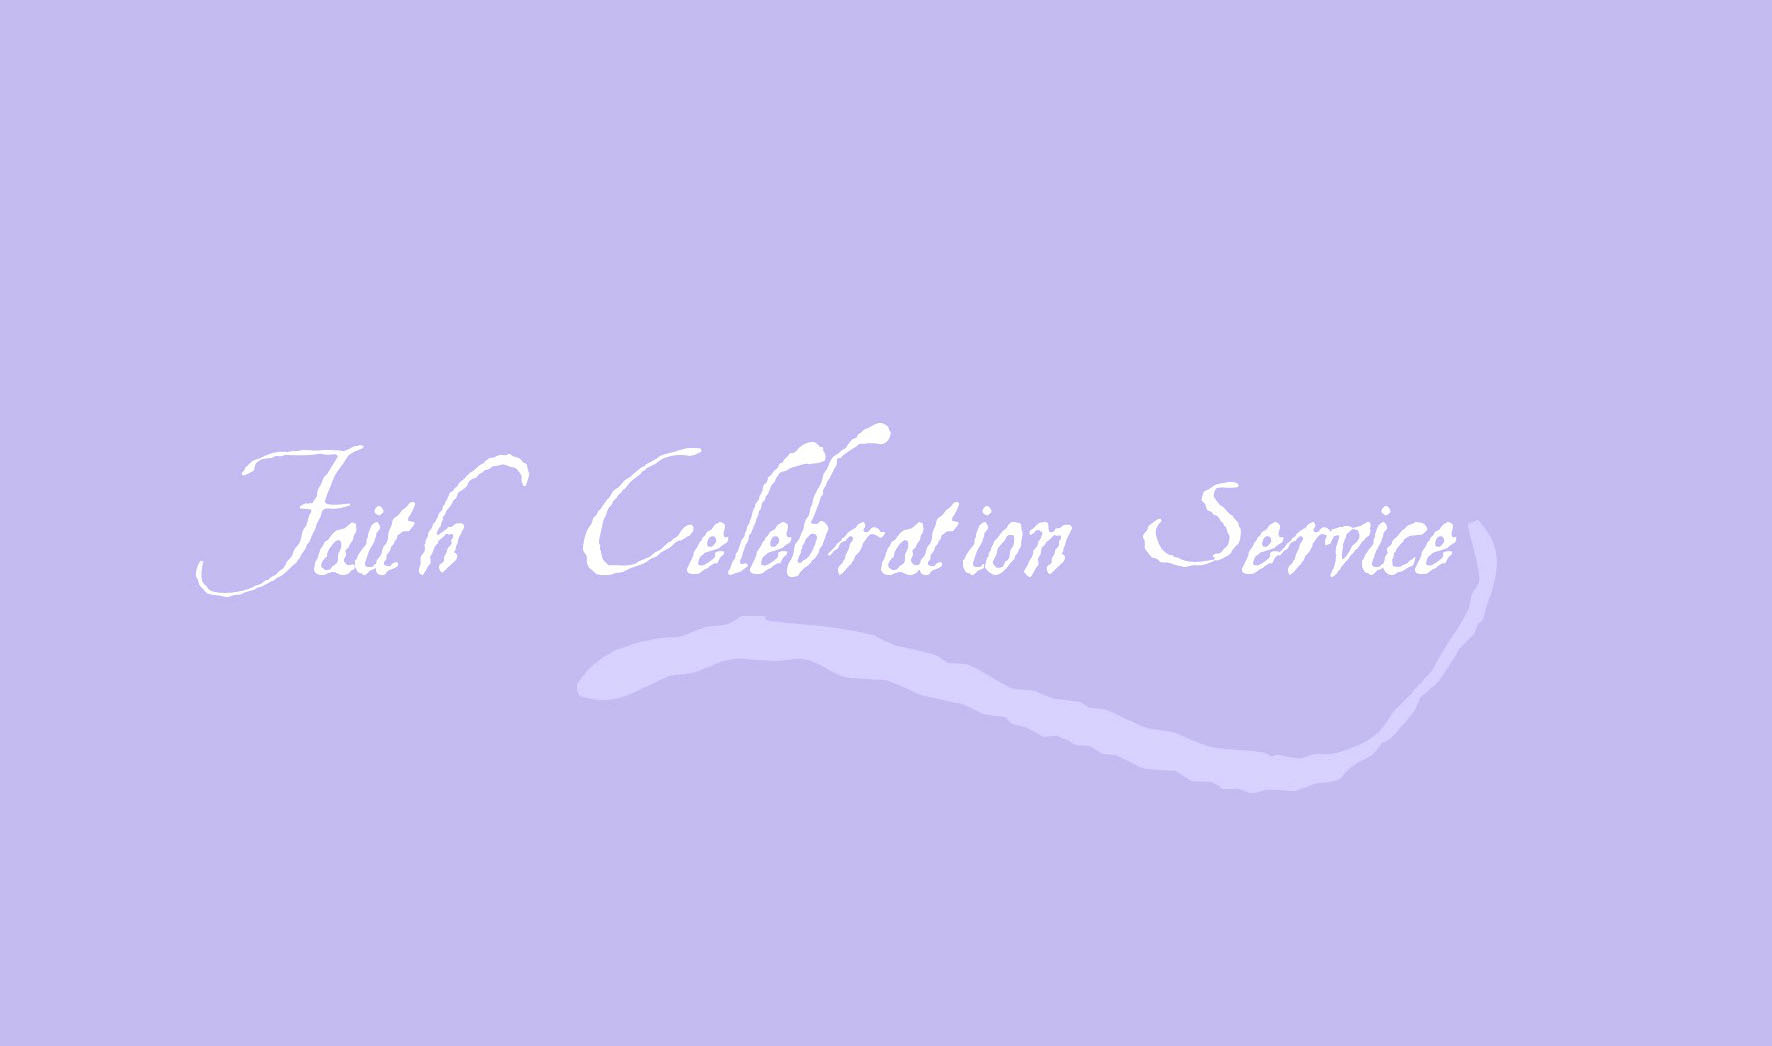 Faith Celebration Service